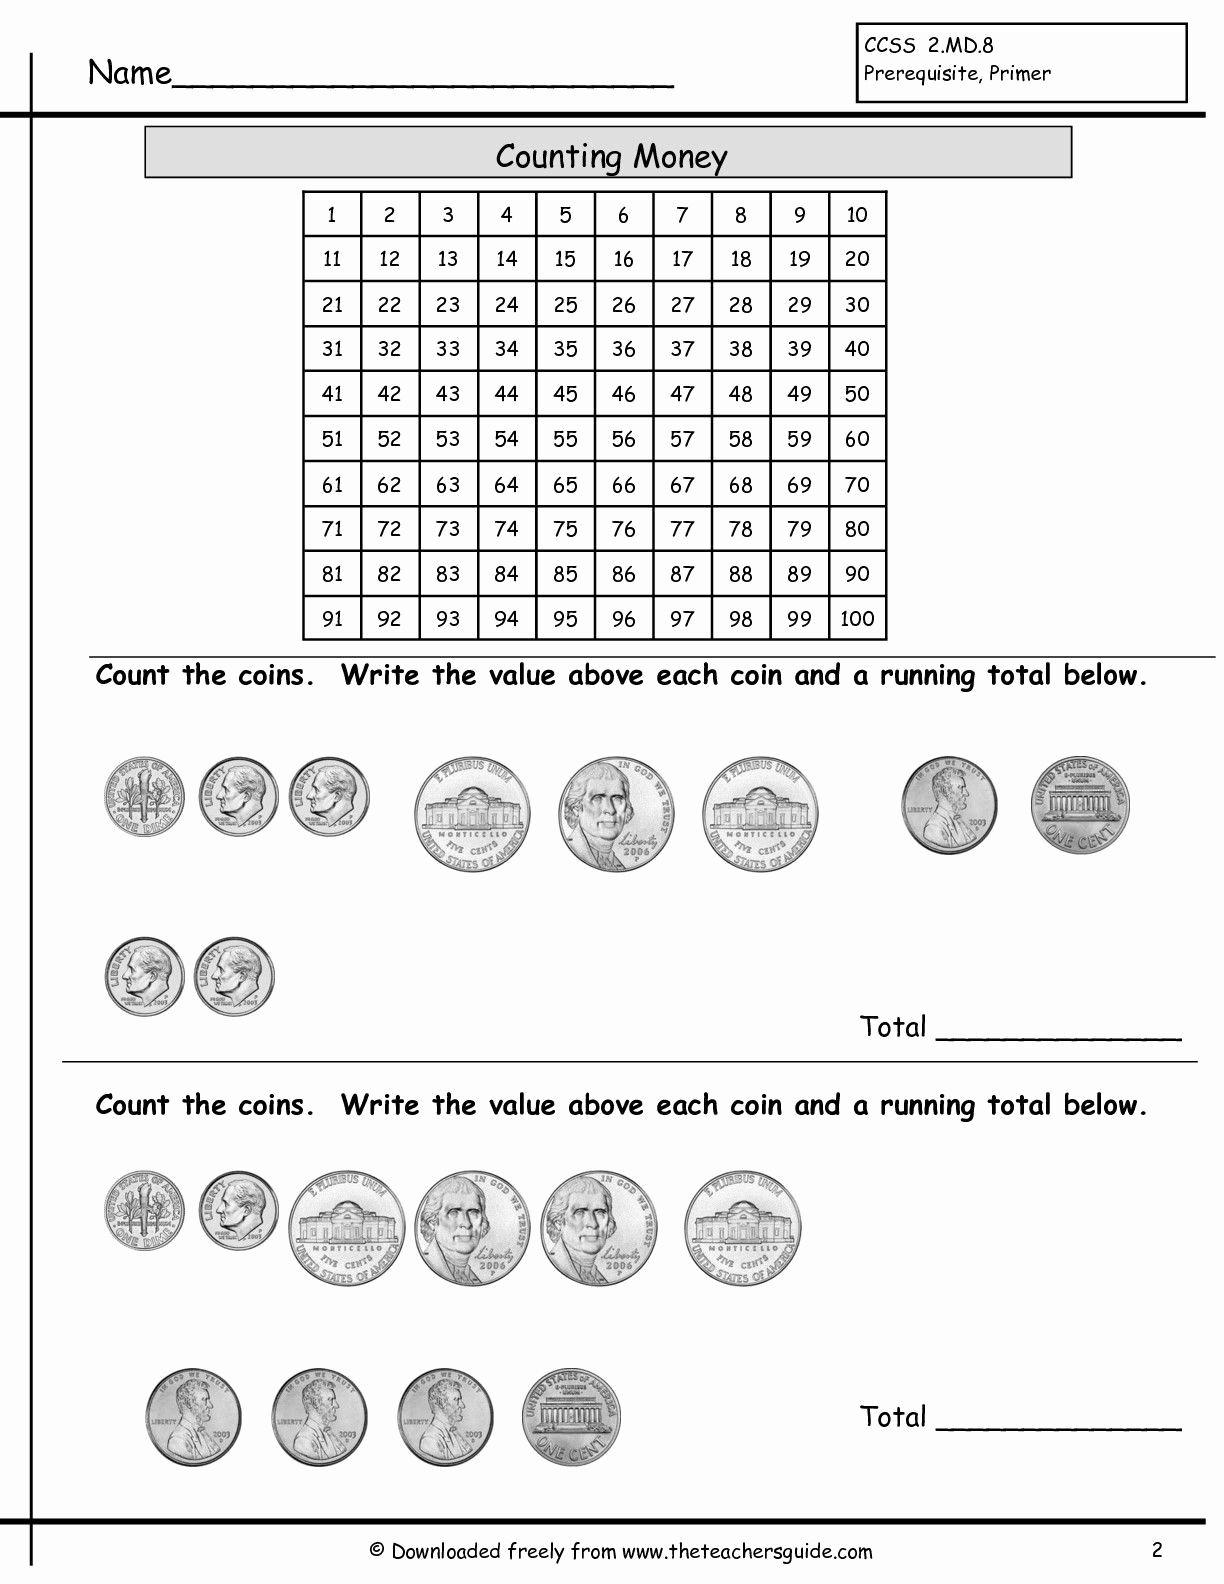 Counting Money Worksheets Pdf Best Of Counting Coins Worksheet Education